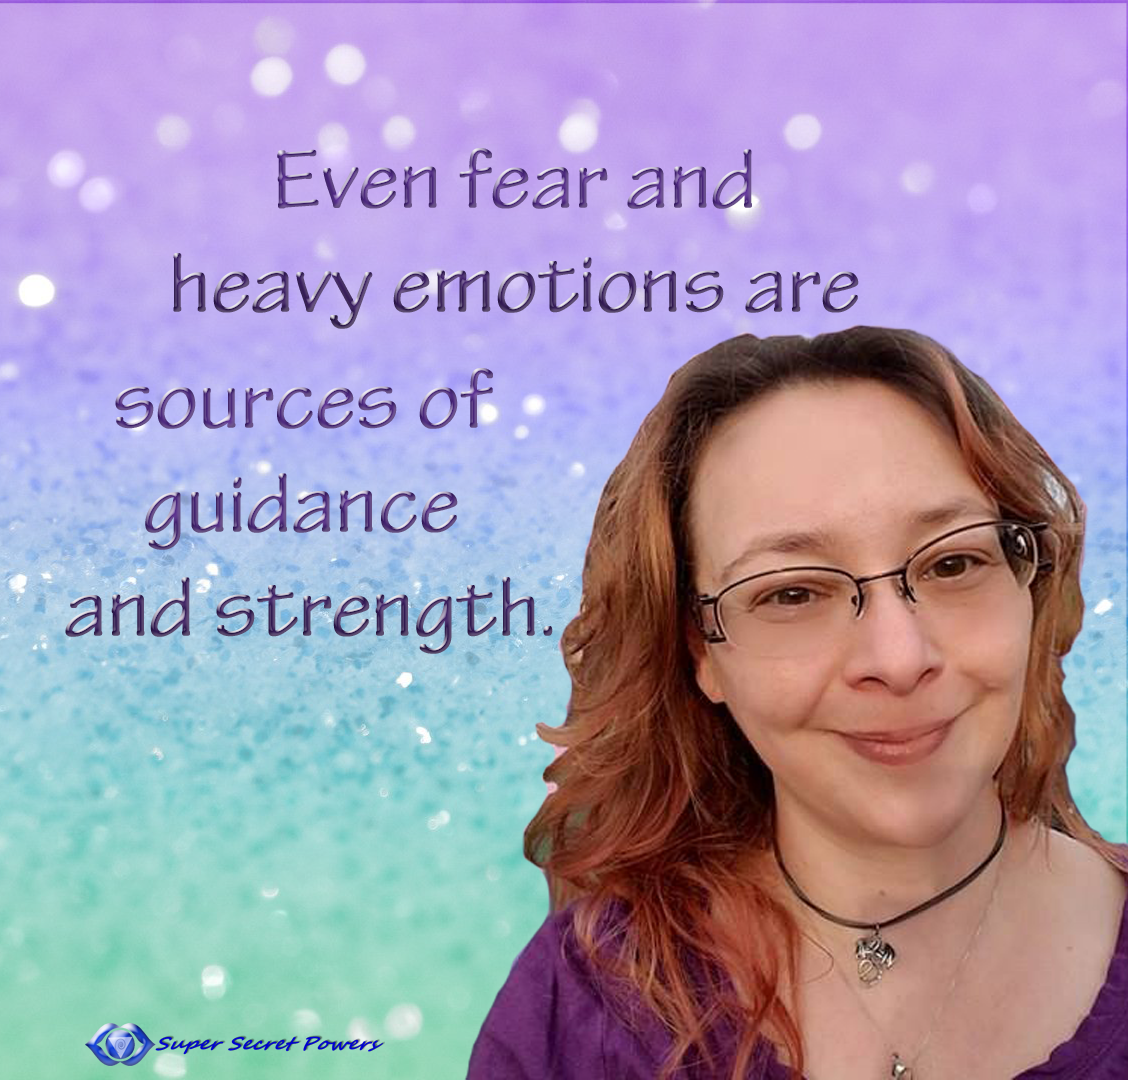 even fear and heavy emotions are sources of guidance and strength